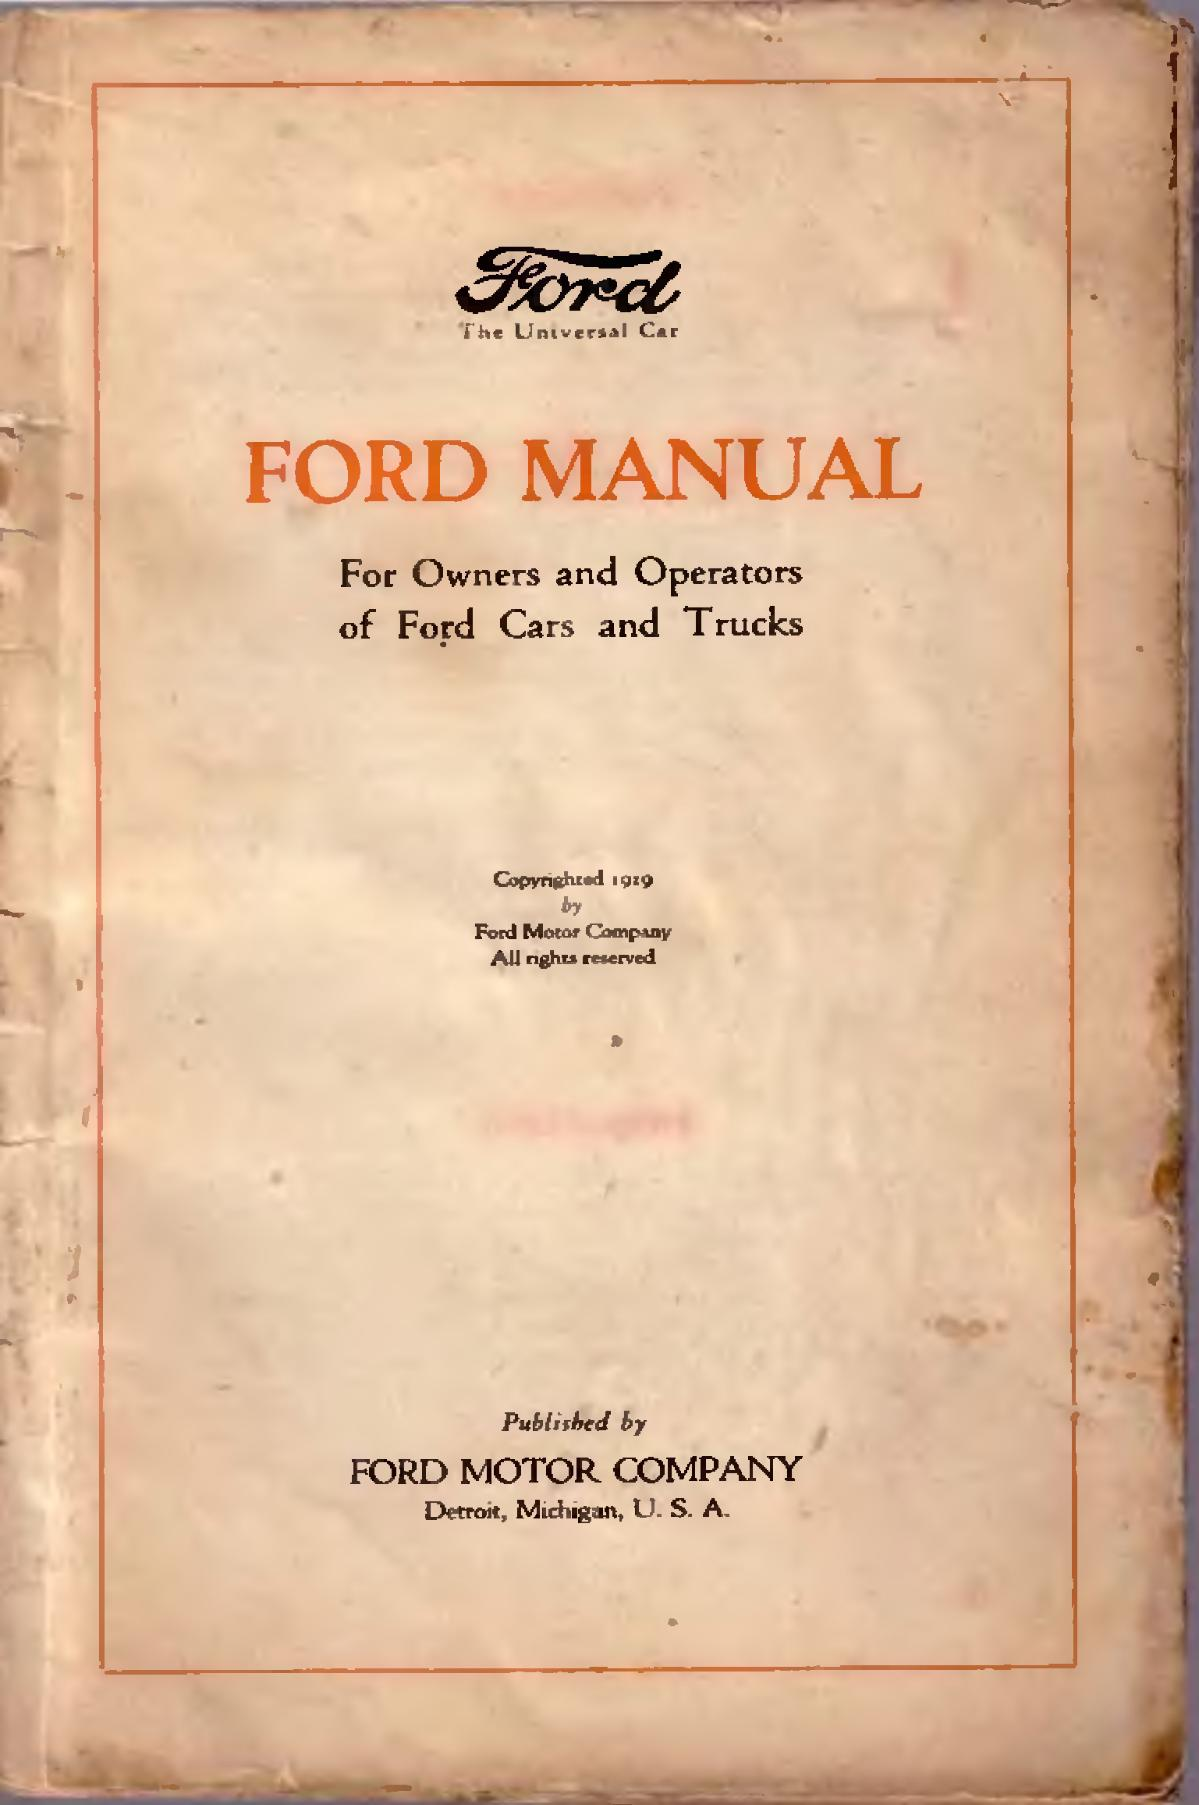 owner s manual wikipedia Frigidaire Owner's Manual